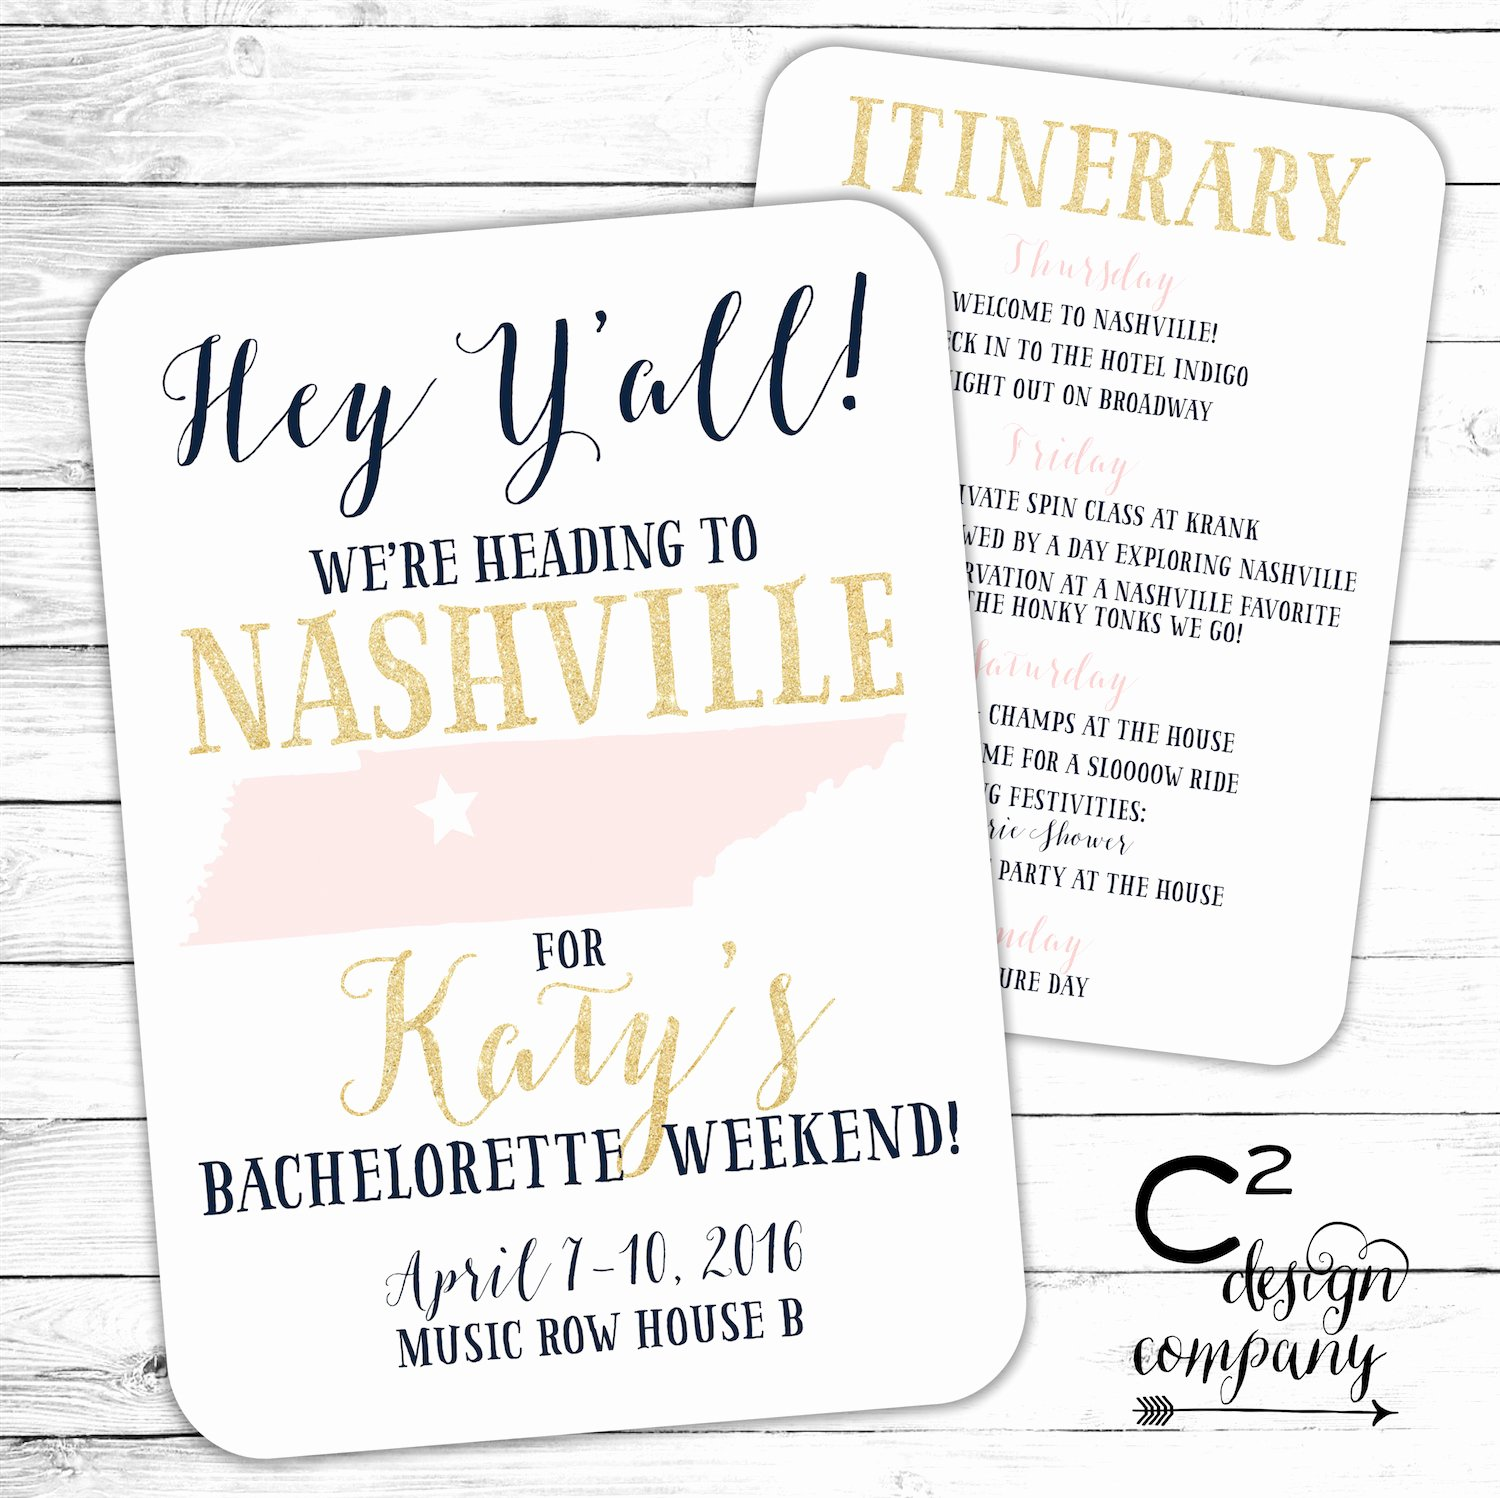 Free Bachelorette Itinerary Template Lovely Nashville Bachelorette Party Invitation with Itinerary